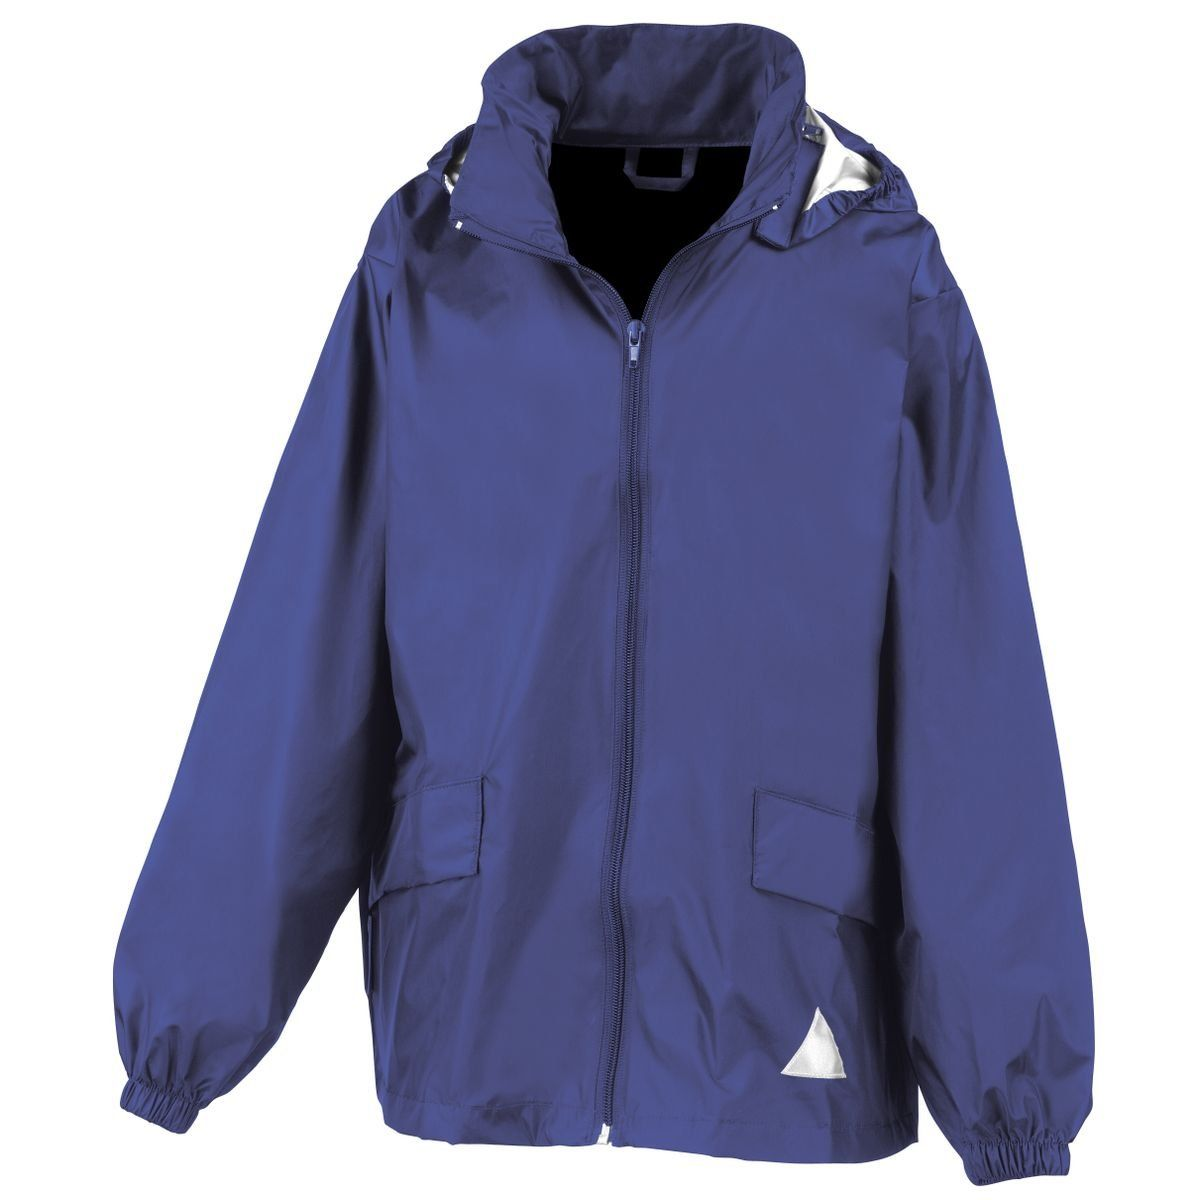 Result Kid's Windcheater in a Bag Royal XL. Two lower front pockets.  concealed elasticated